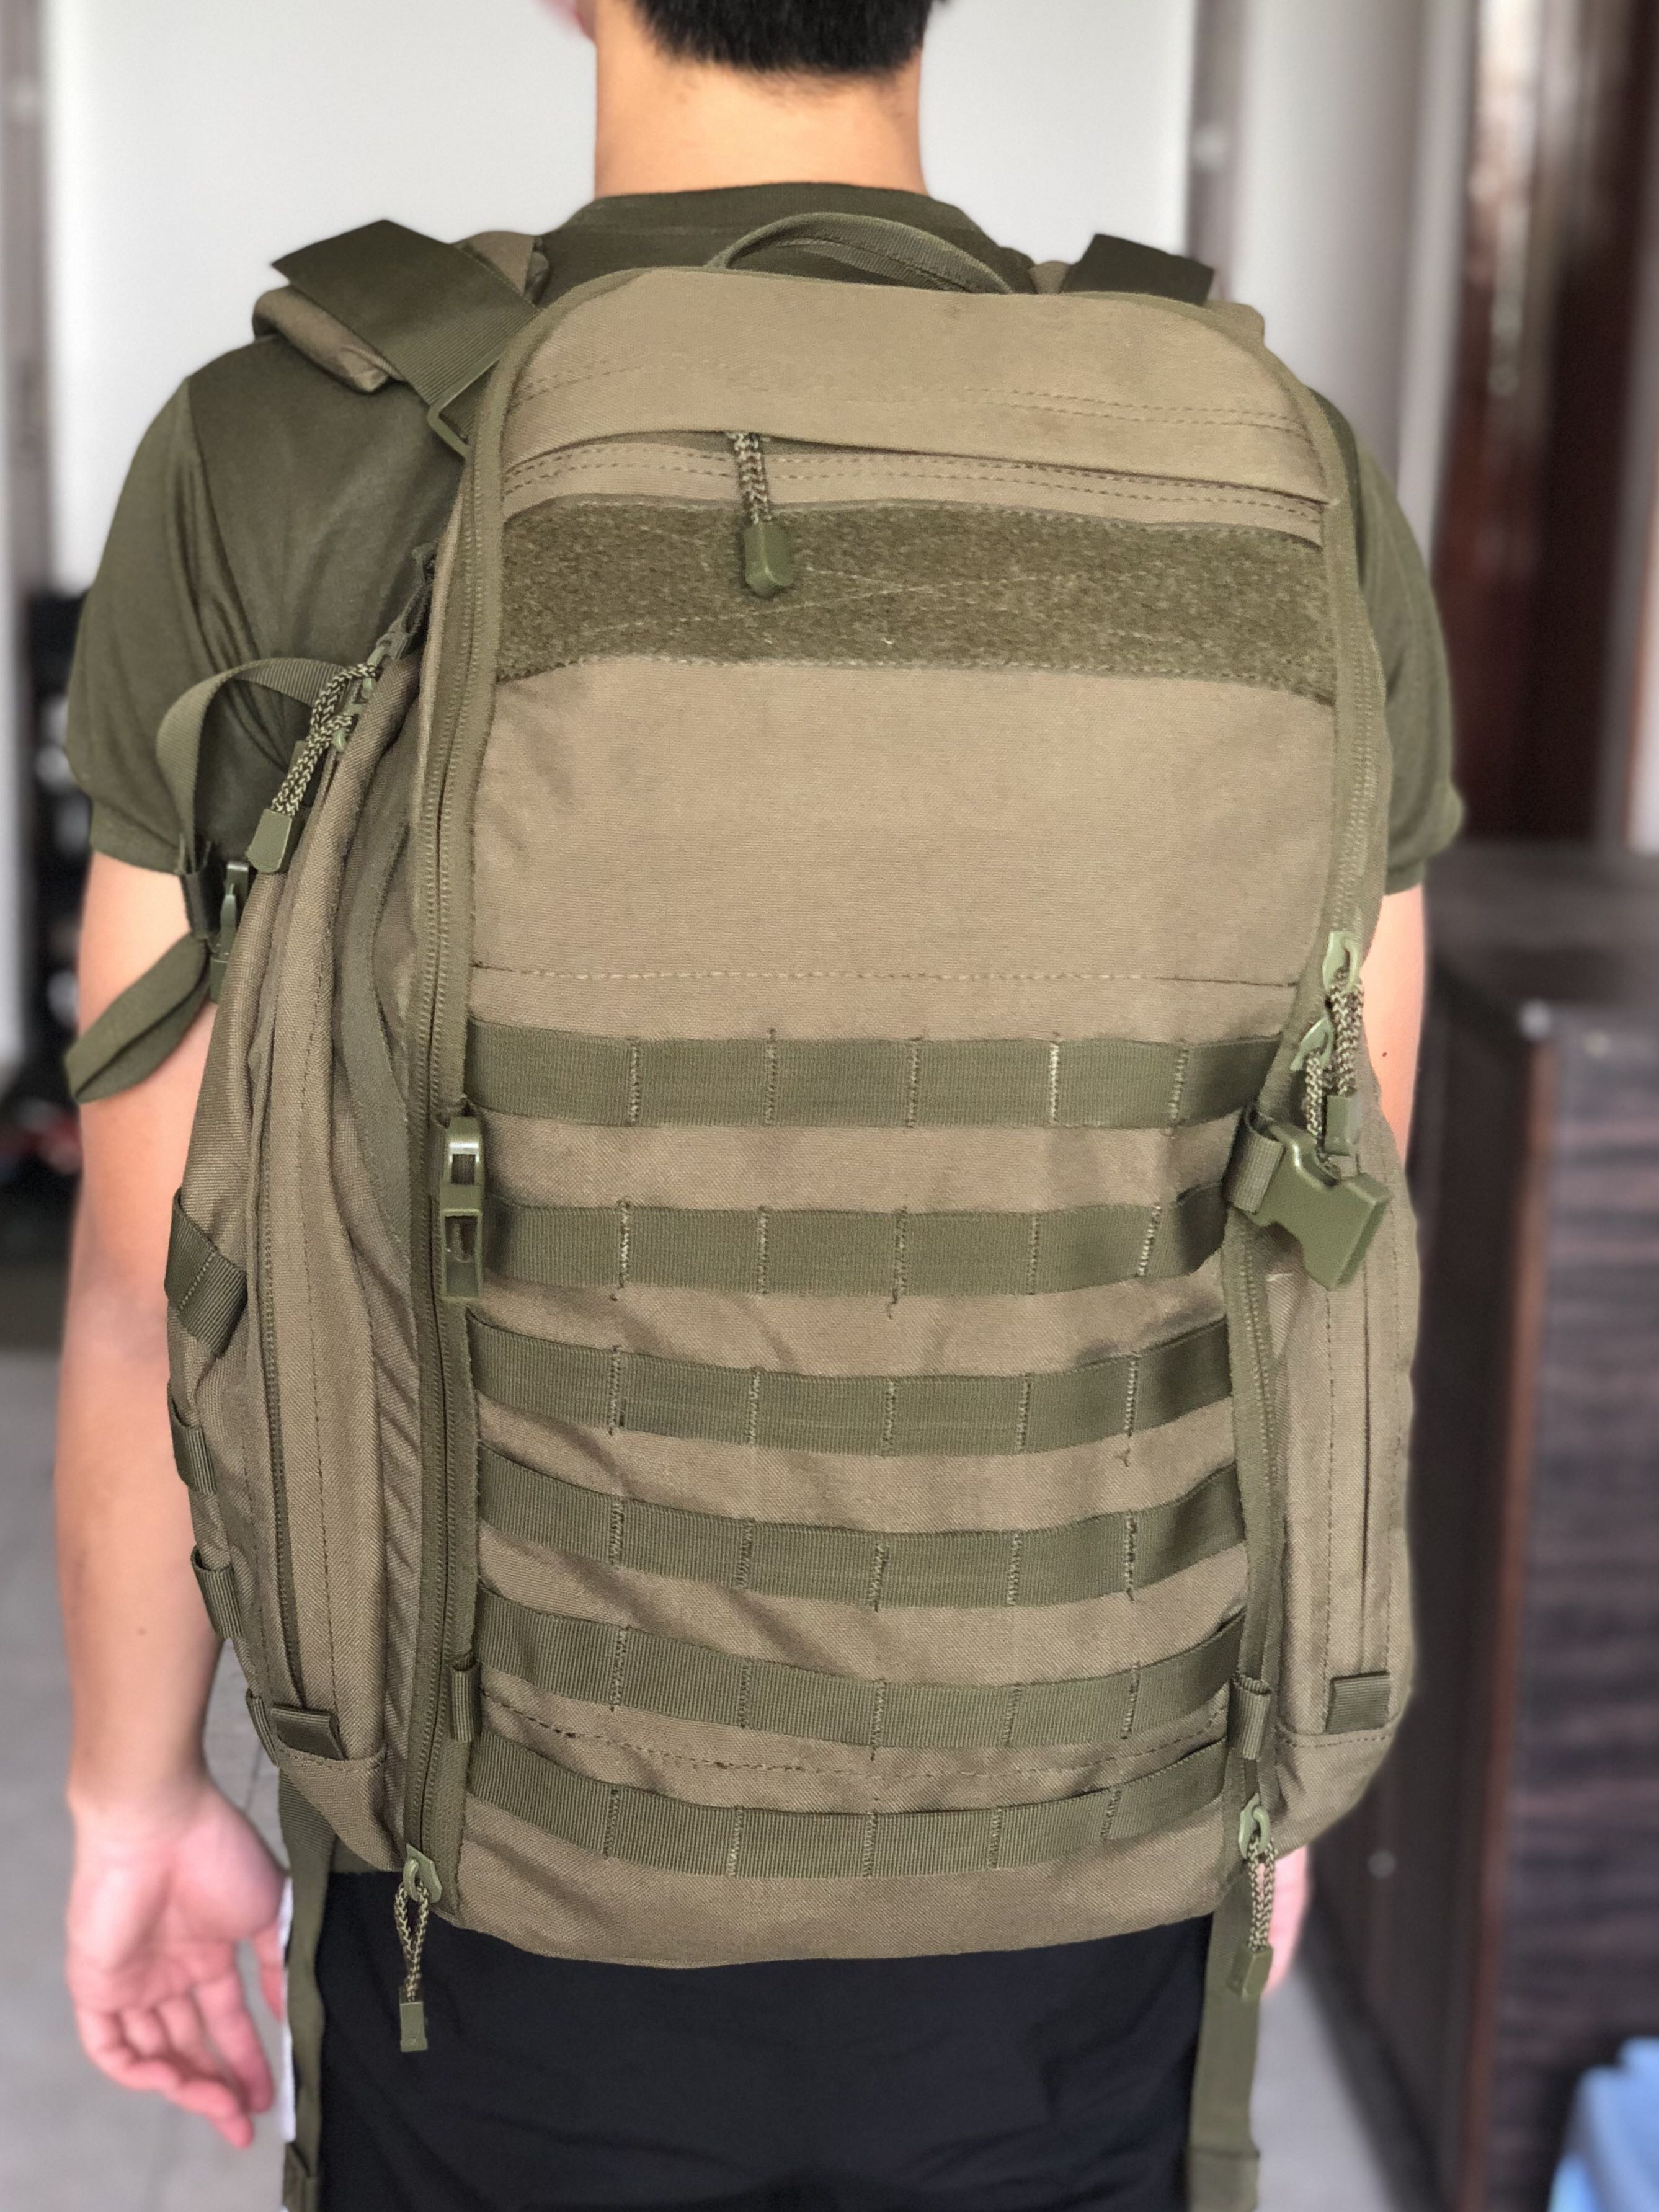 Condor- Bison Backpack (Army green colour), Men s Fashion, Bags   Wallets,  Backpacks on Carousell 16b75c14c32